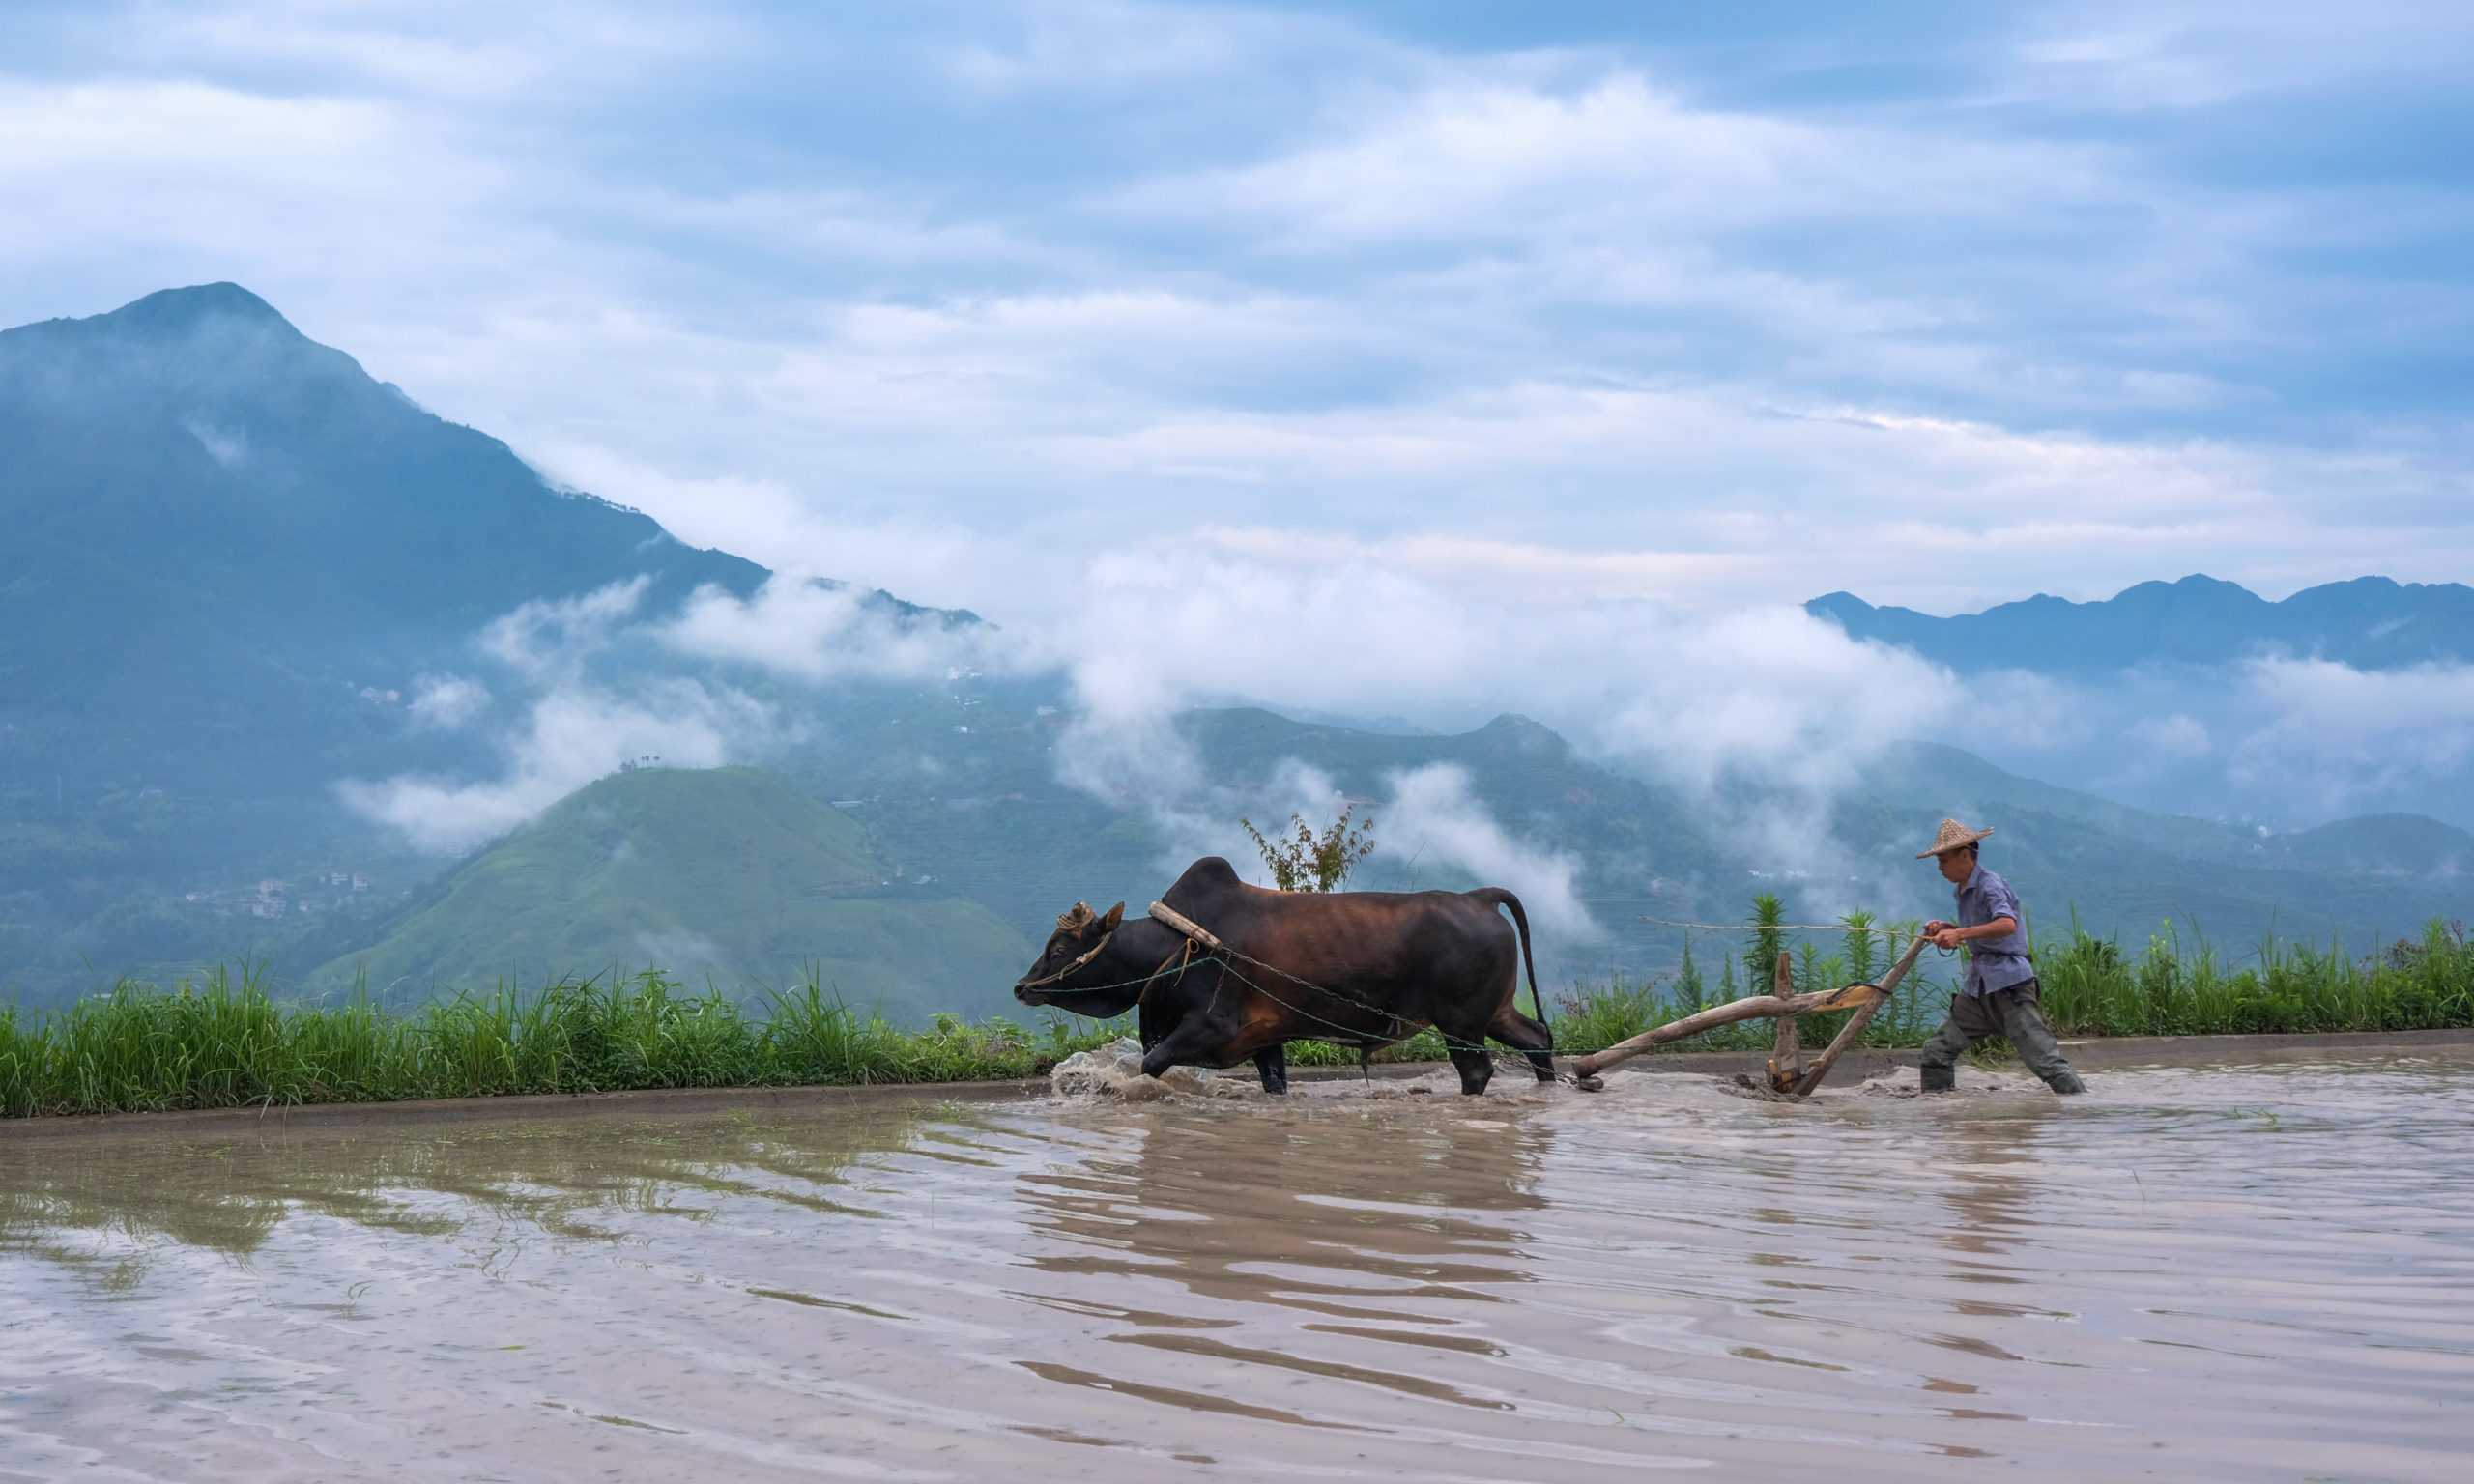 Mandatory Credit: Photo by Xinhua/Shutterstock (10676562h) A farmer ploughs the field in the help of a buffalo in Xiaozhoushan Township, Qingtian County of east China's Zhejiang Province, June 11, 2020. Farmers started ploughing for transplanting rice seedlings in terraced fields in Xiaozhoushan Township after the planted rape are harvested in June. China Zhejiang Qingtian Fields Plough - 11 Jun 2020